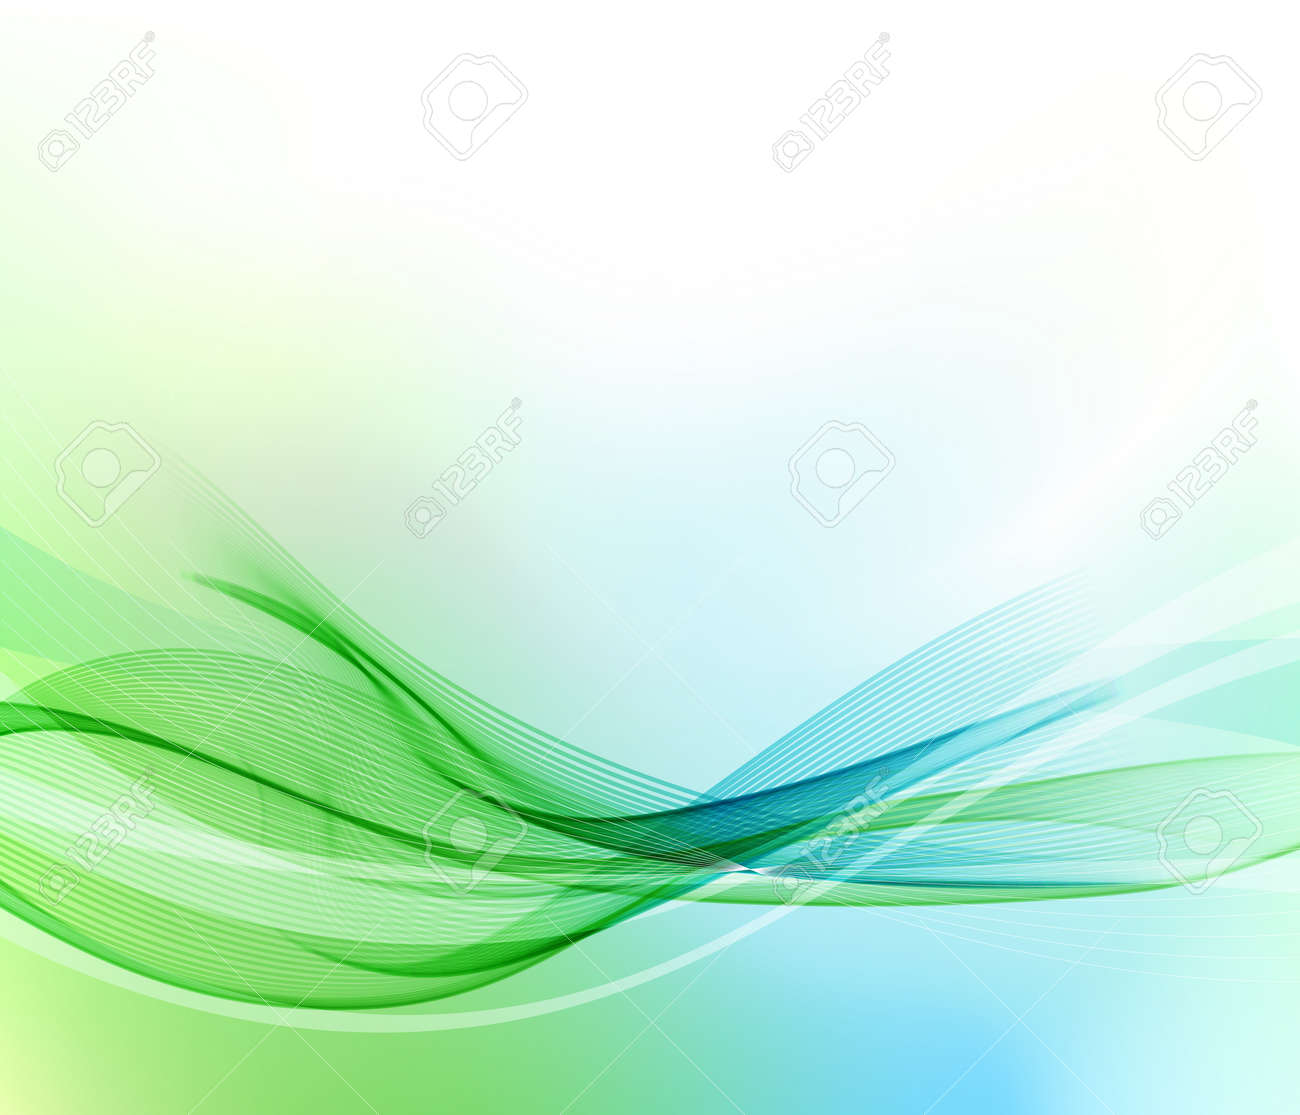 Abstract Blue And Green Wavy Lines Colorful Vector Background